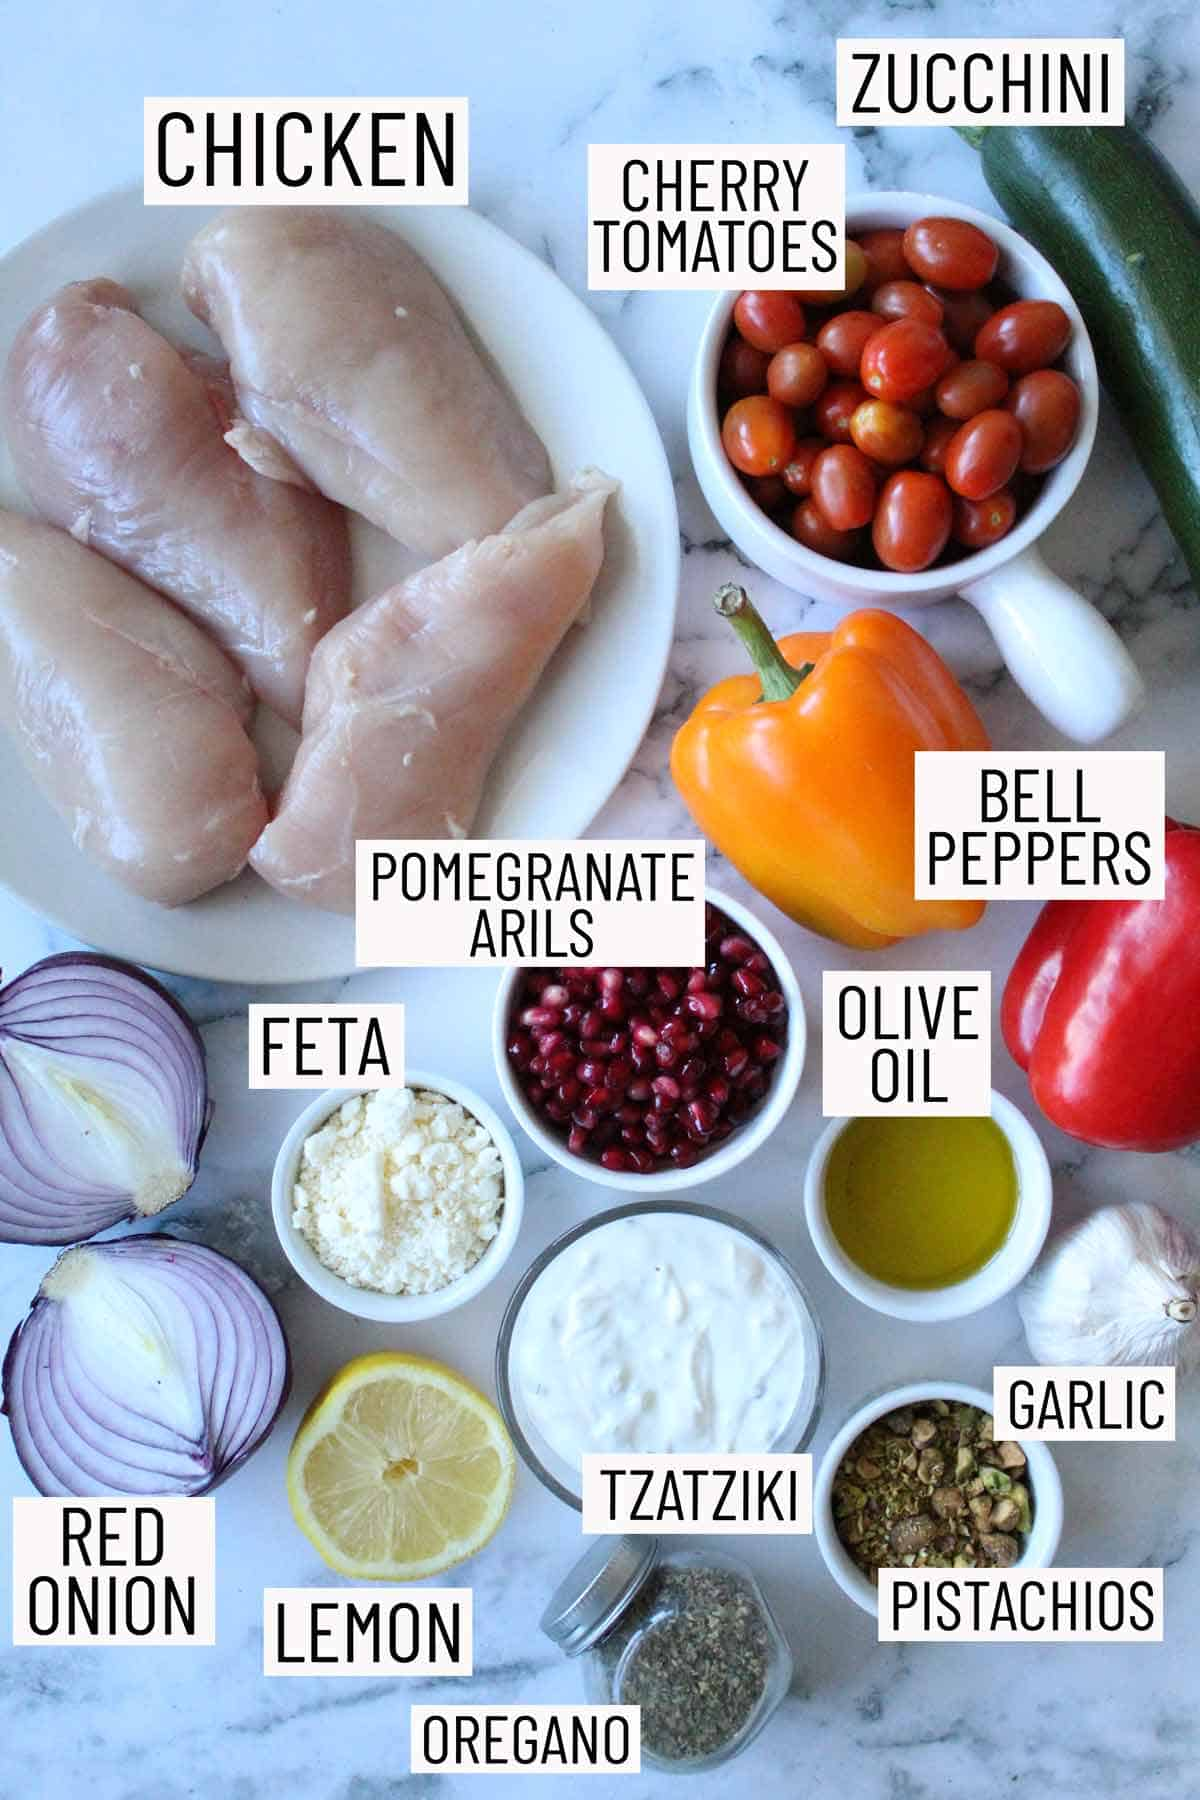 Overhead image for ingredients for a sheet pan dinner.